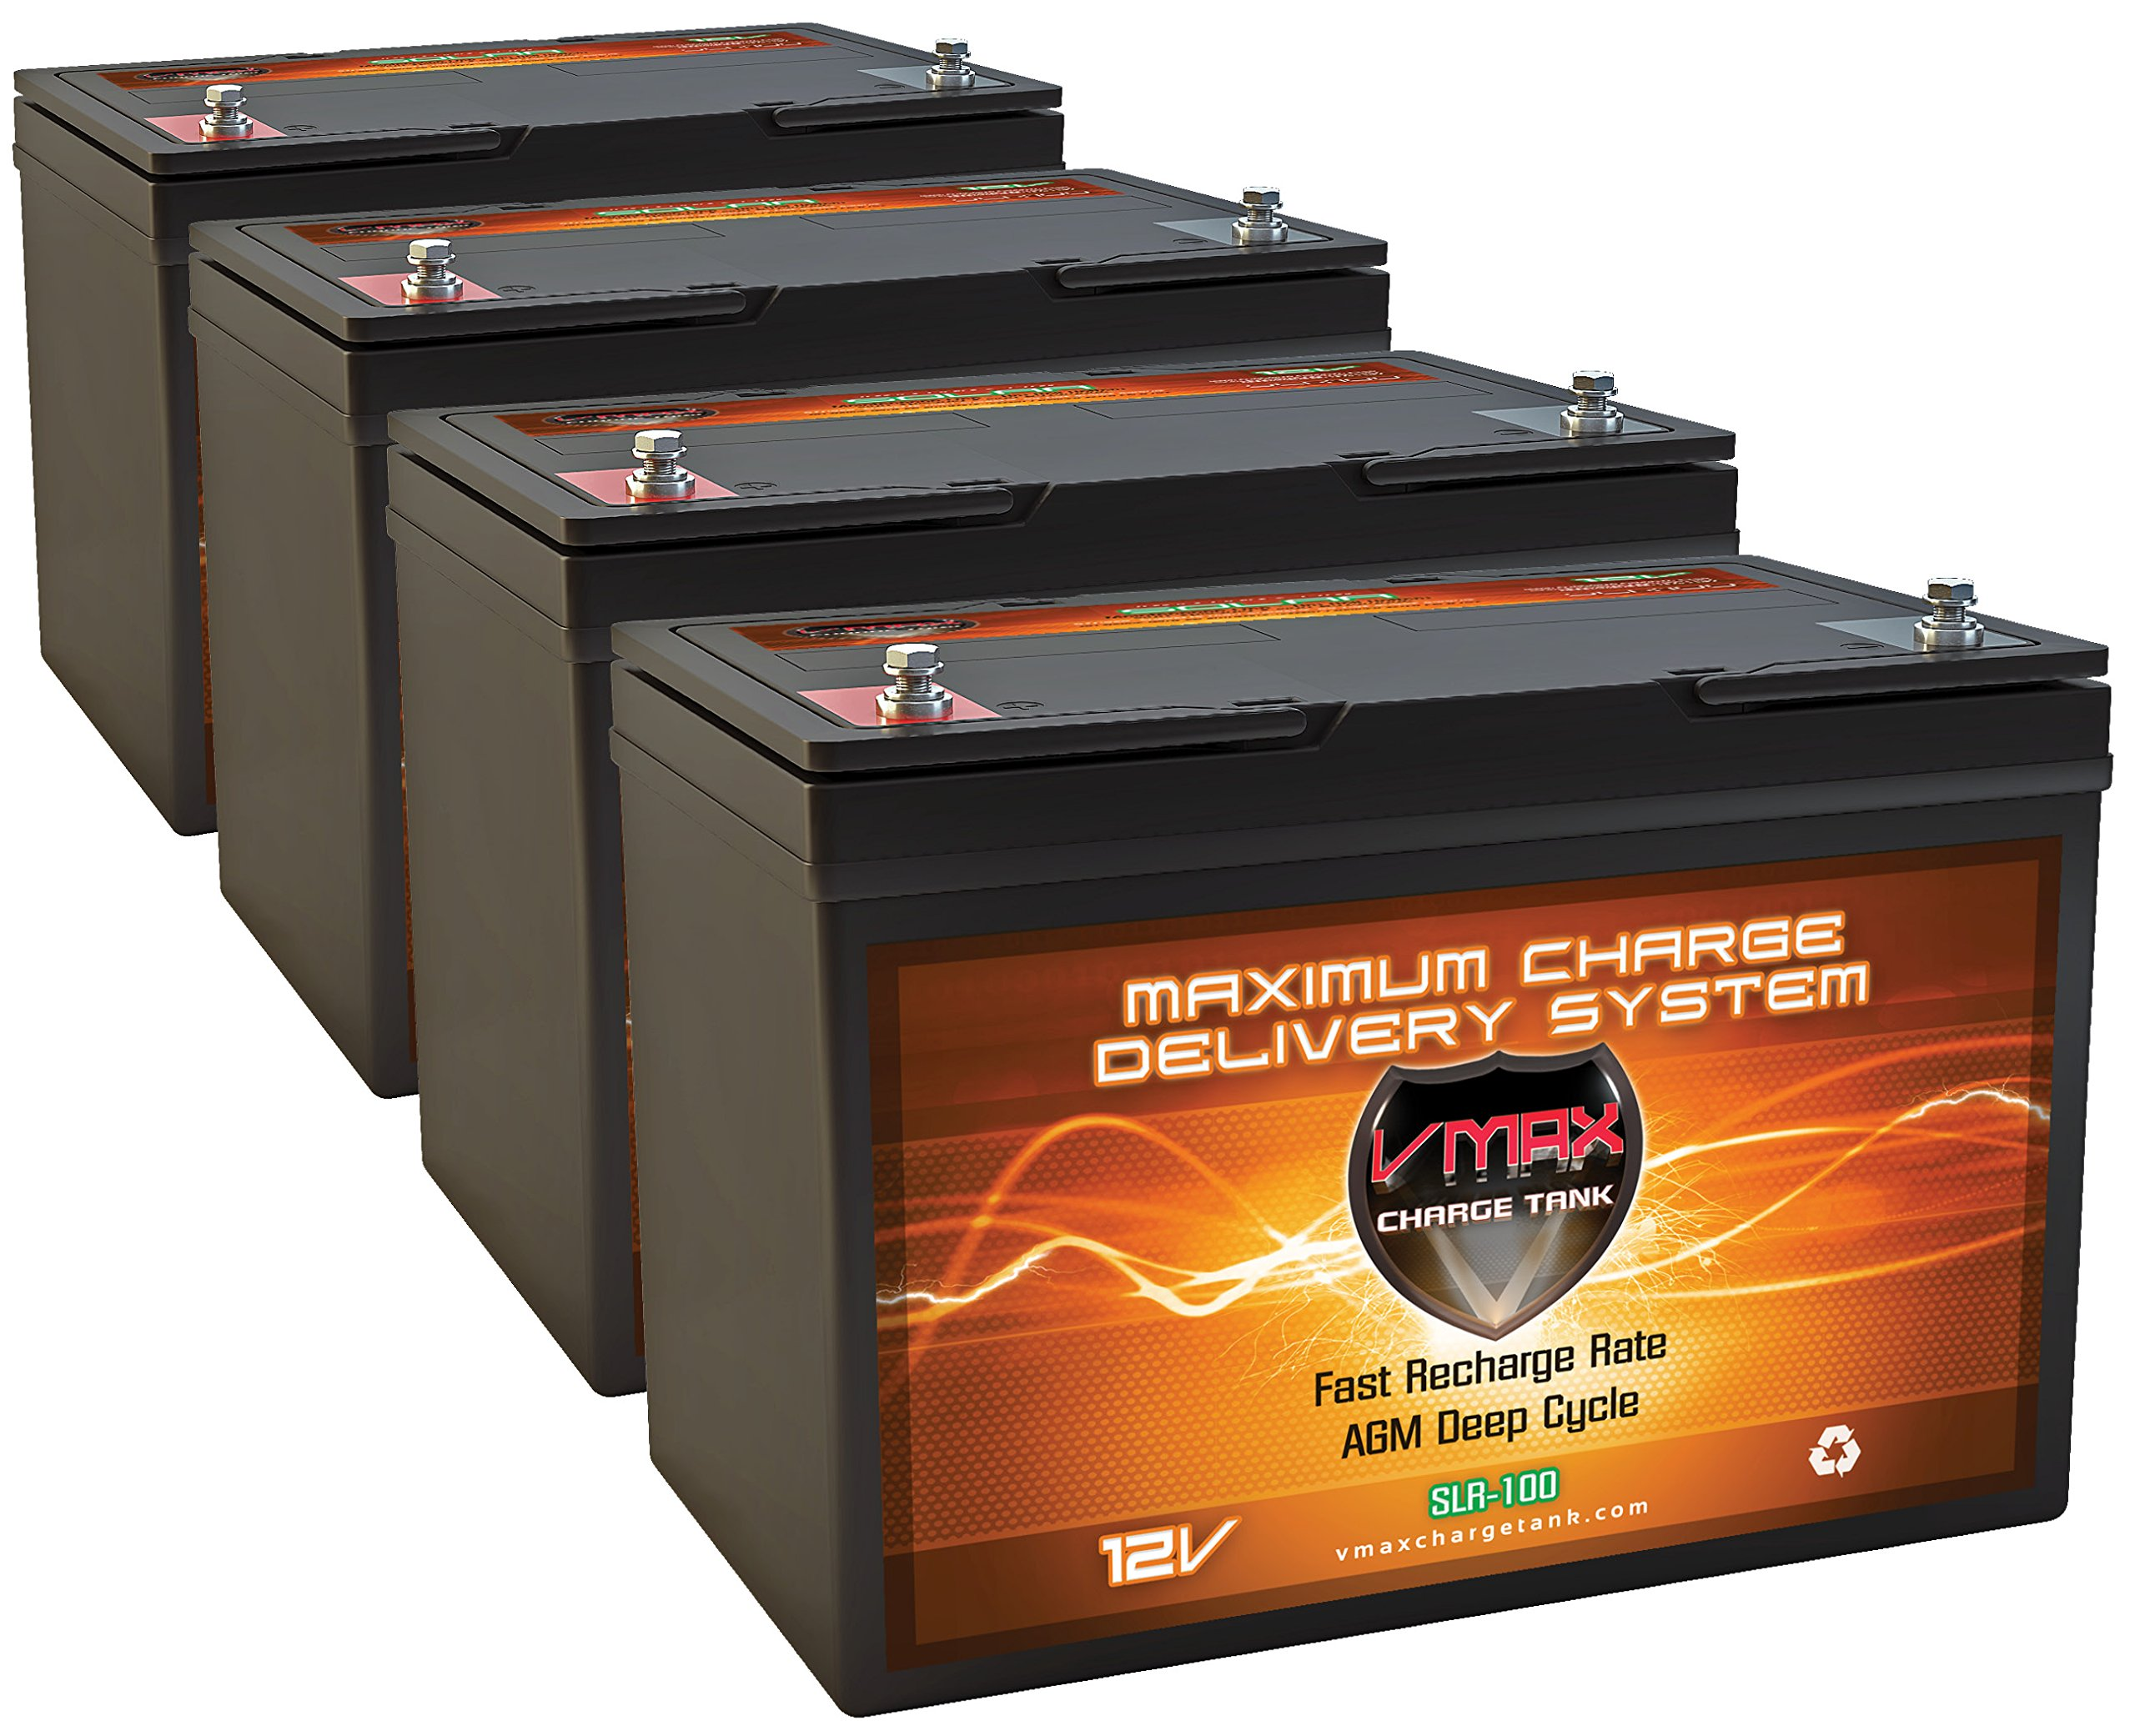 QTY4 VMAX SLR100 AGM deep cycle SLA battery 12 Volt 100Ah ea.(400Ah total) Maintenance free sealed batteries for Use with PV Solar Panels, wind turbine, UPS backup generator or smart charger for off grid sump pump lift winch pallet jack and any other heav by VMAX Solar